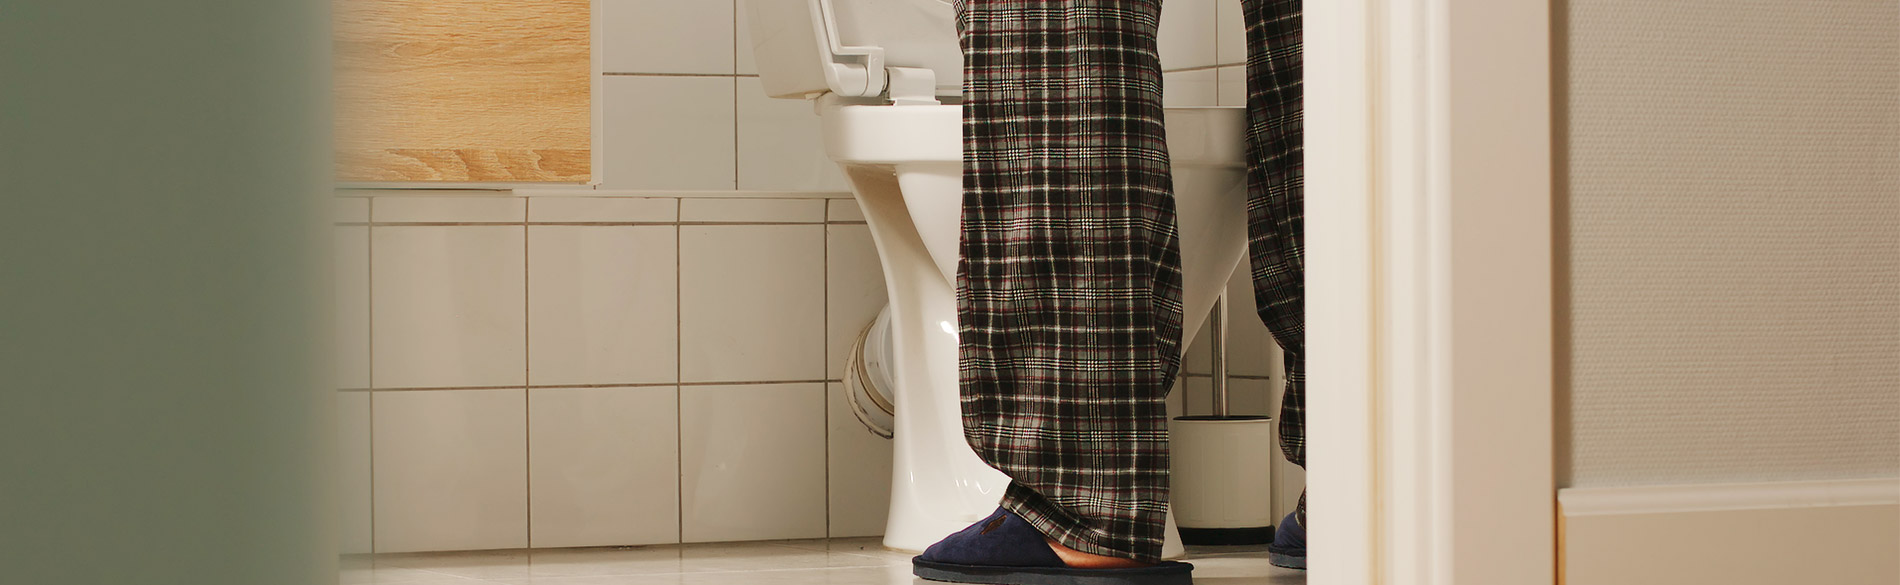 What does a frequent or urgent need to urinate mean?